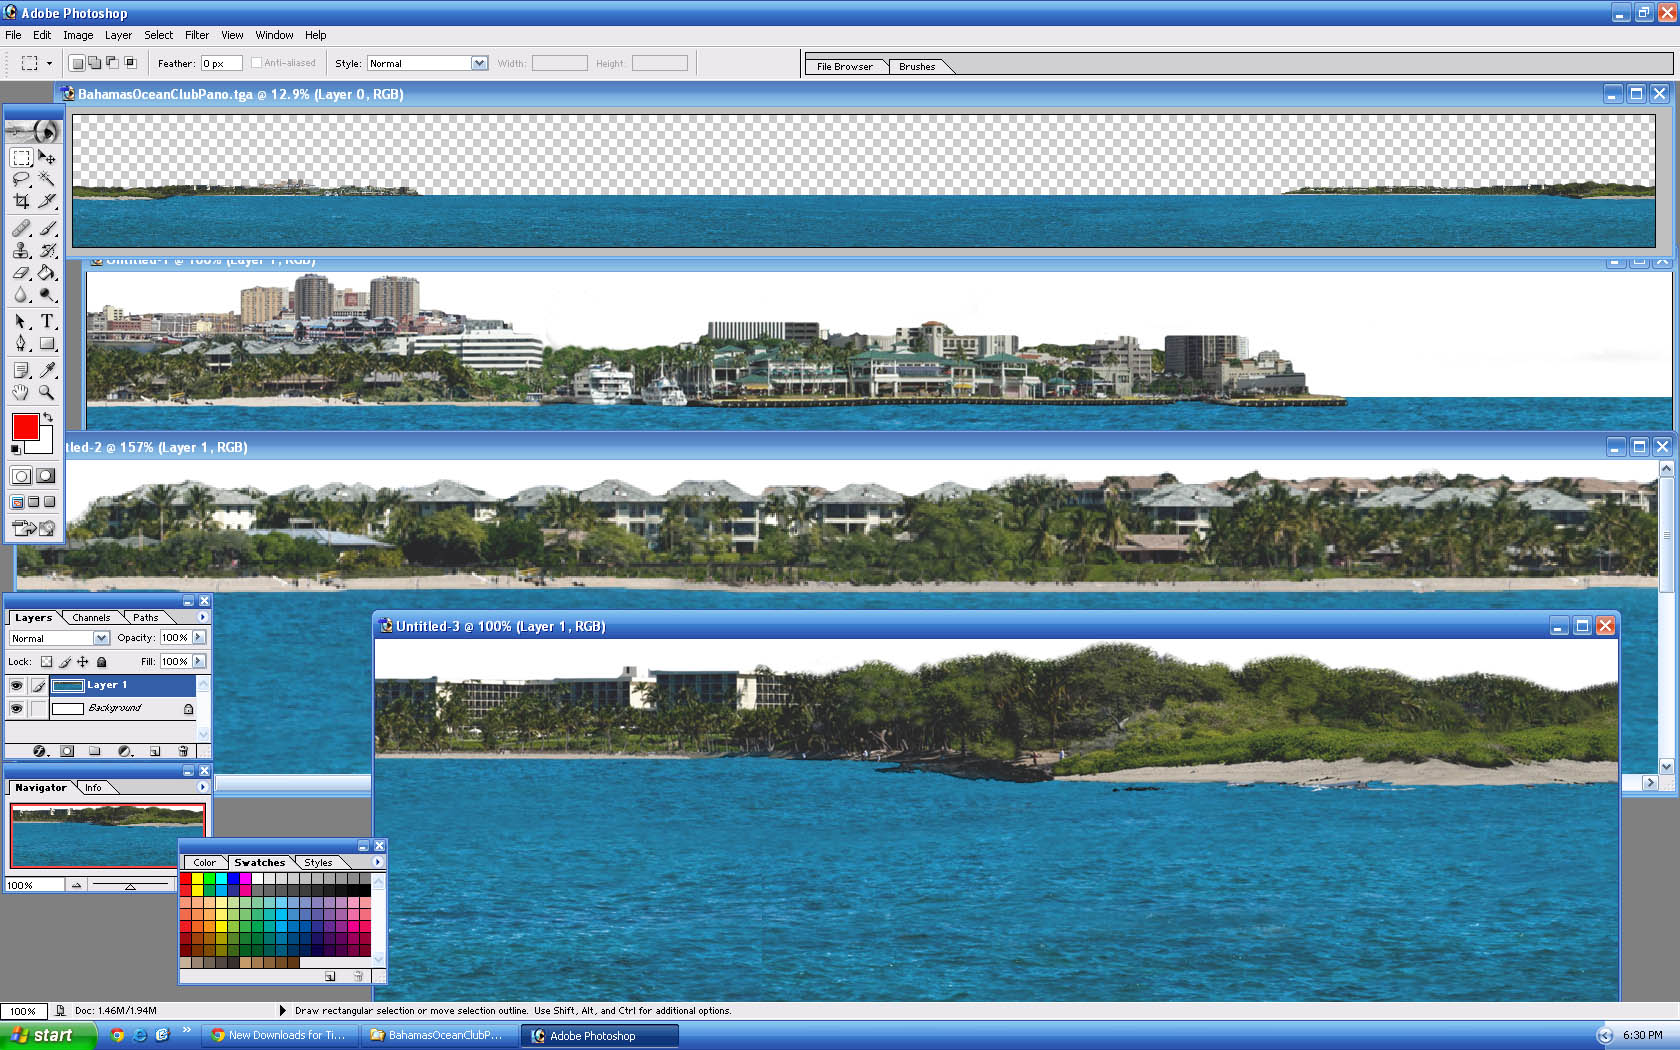 Picture of BahamasOceanClubPano - click to view original size